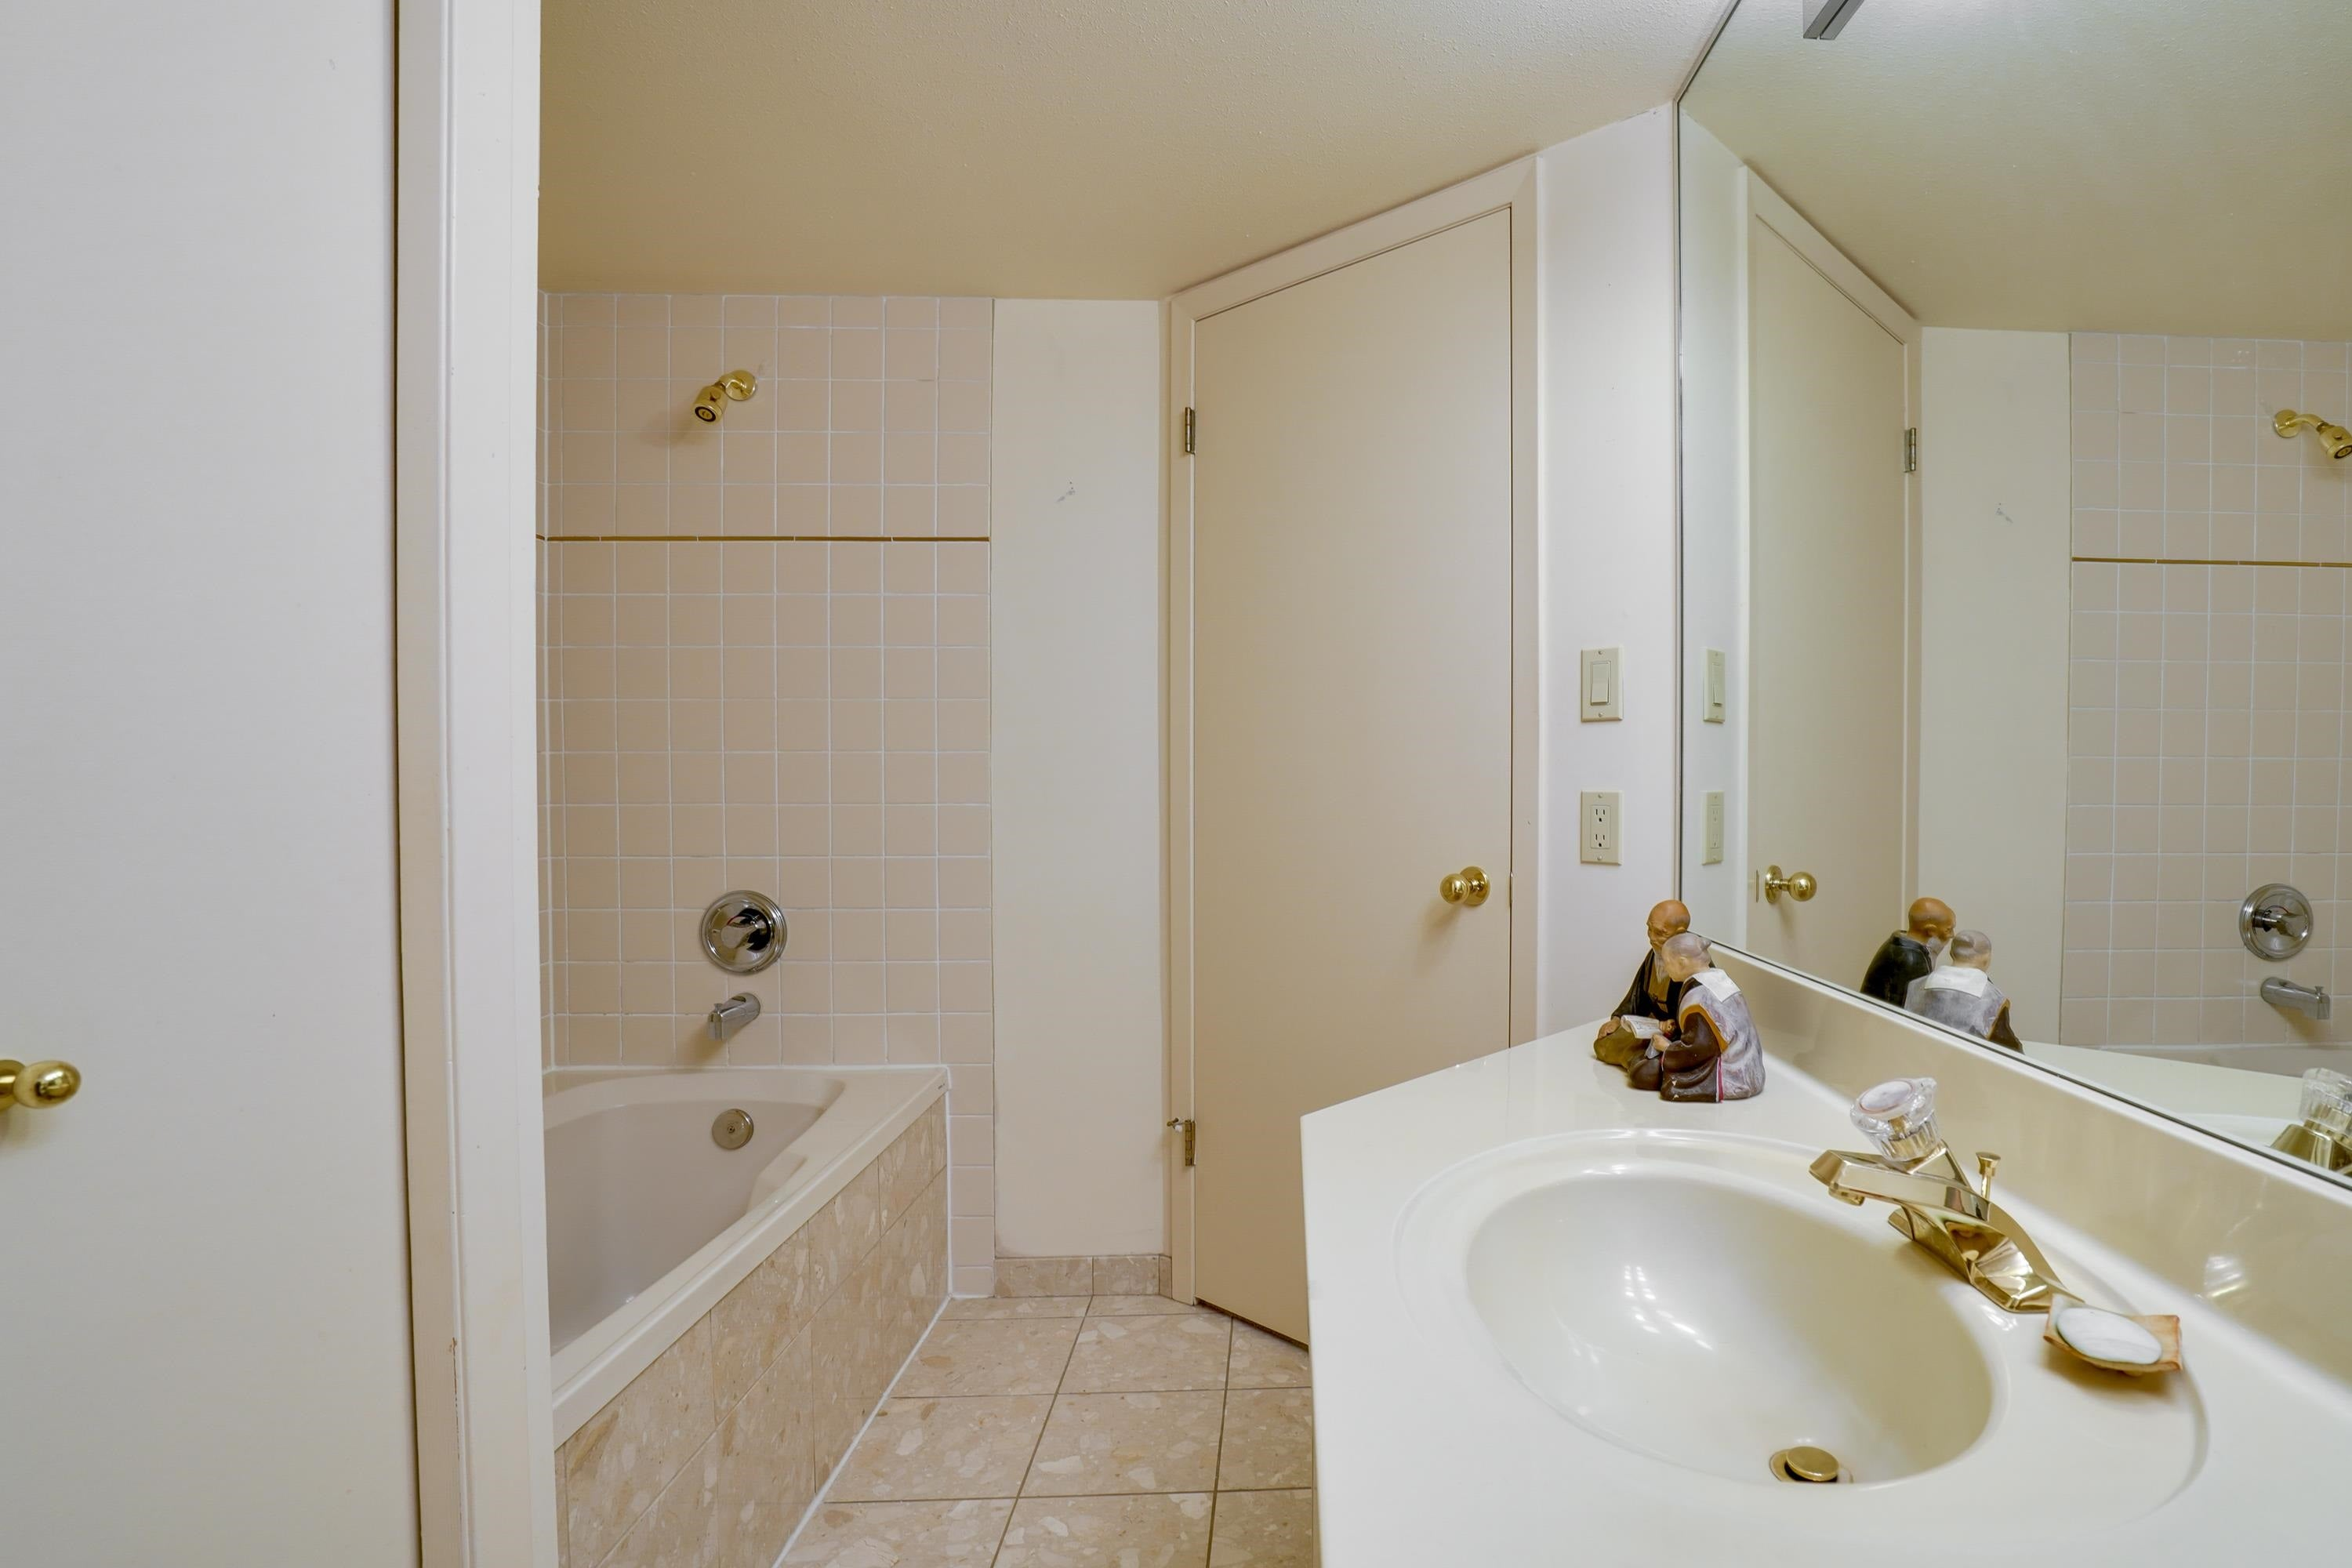 405 168 CHADWICK COURT - Lower Lonsdale Apartment/Condo for sale, 3 Bedrooms (R2619951) - #12